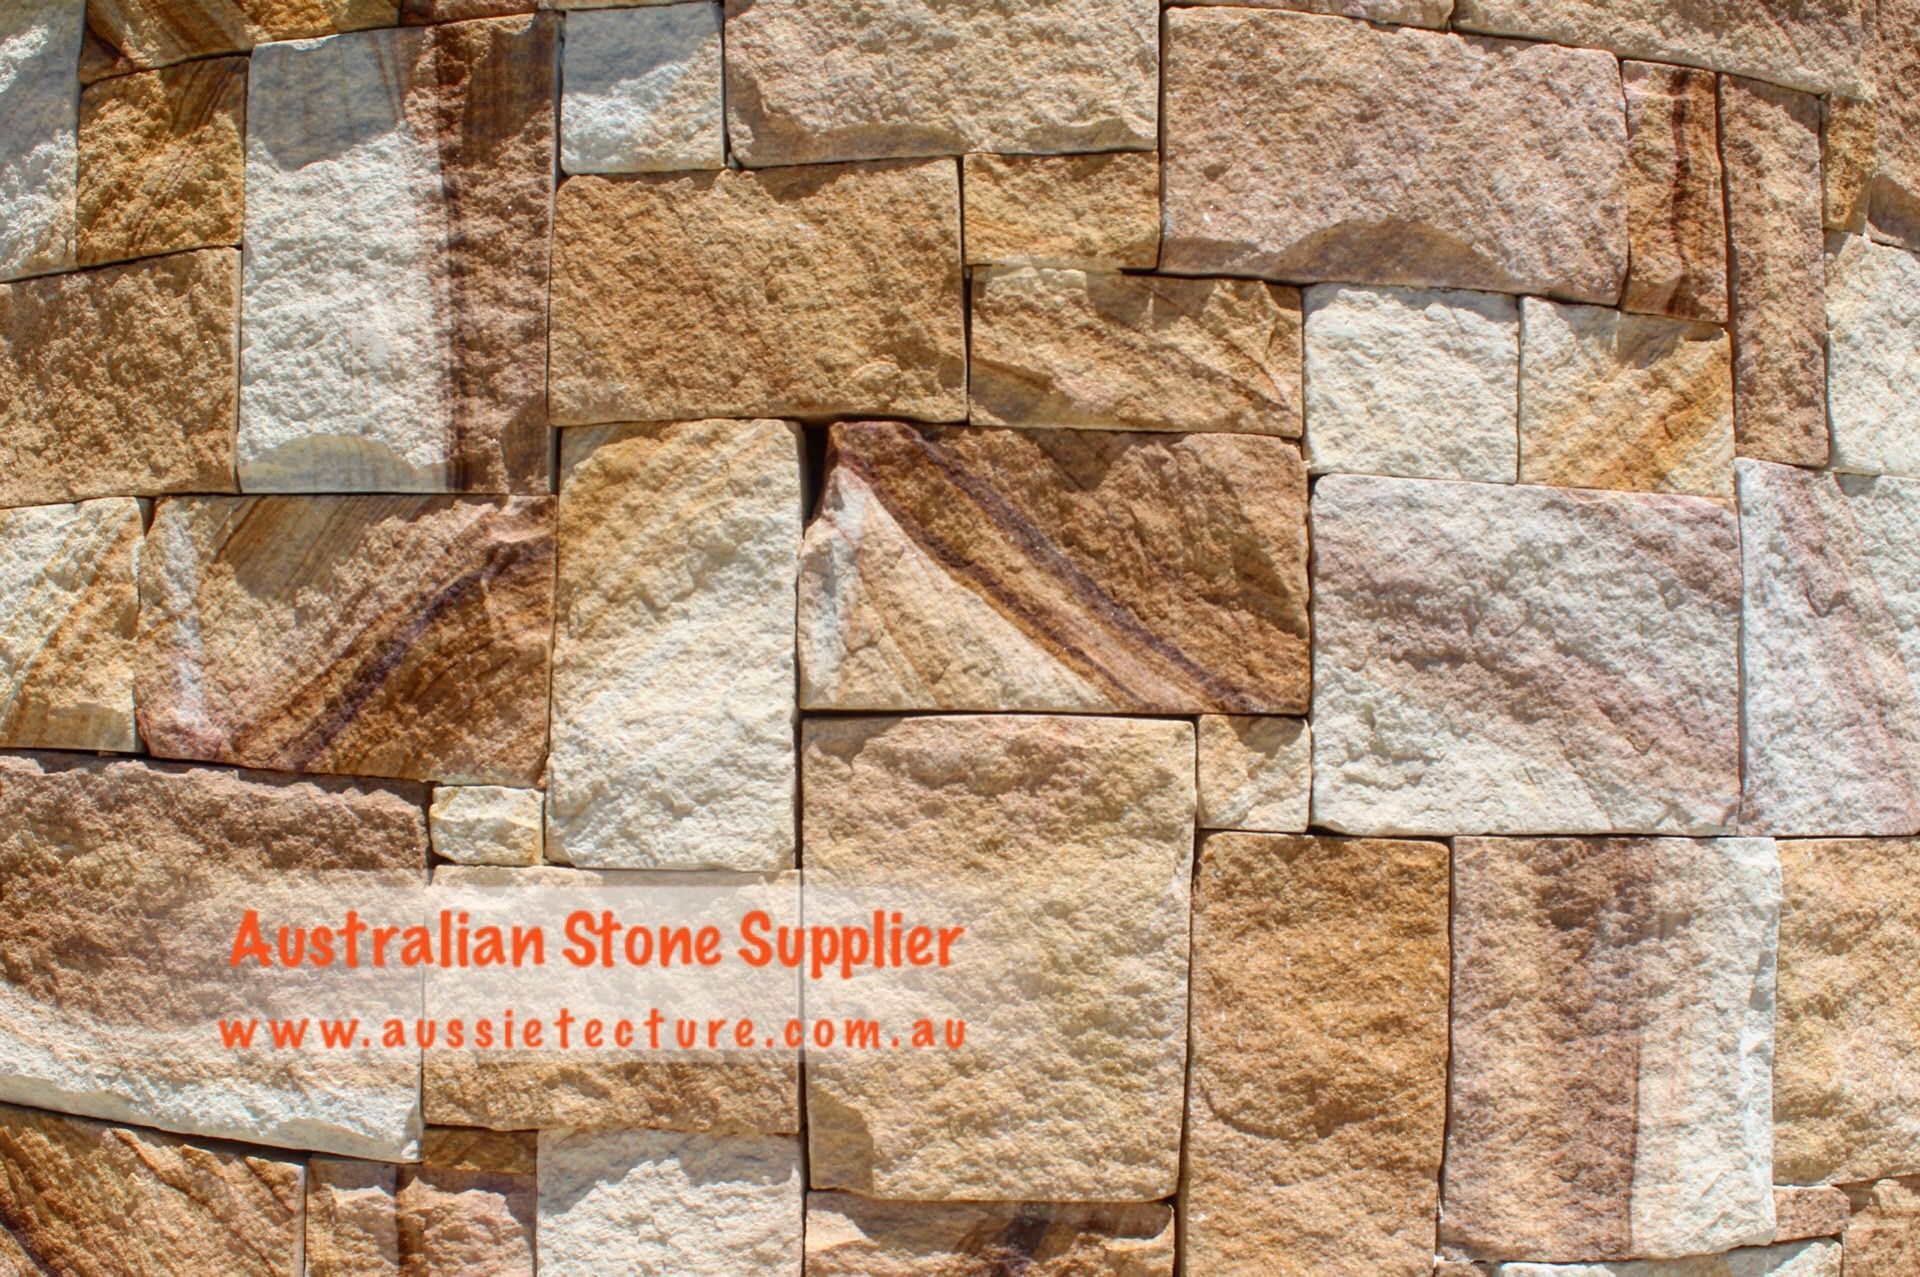 Australian Sandstone Colonial Walling Made Up Of Natural Sandstone Cladding Available In 4 Colors Sandst Natural Stone Cladding Sandstone Wall Stone Supplier